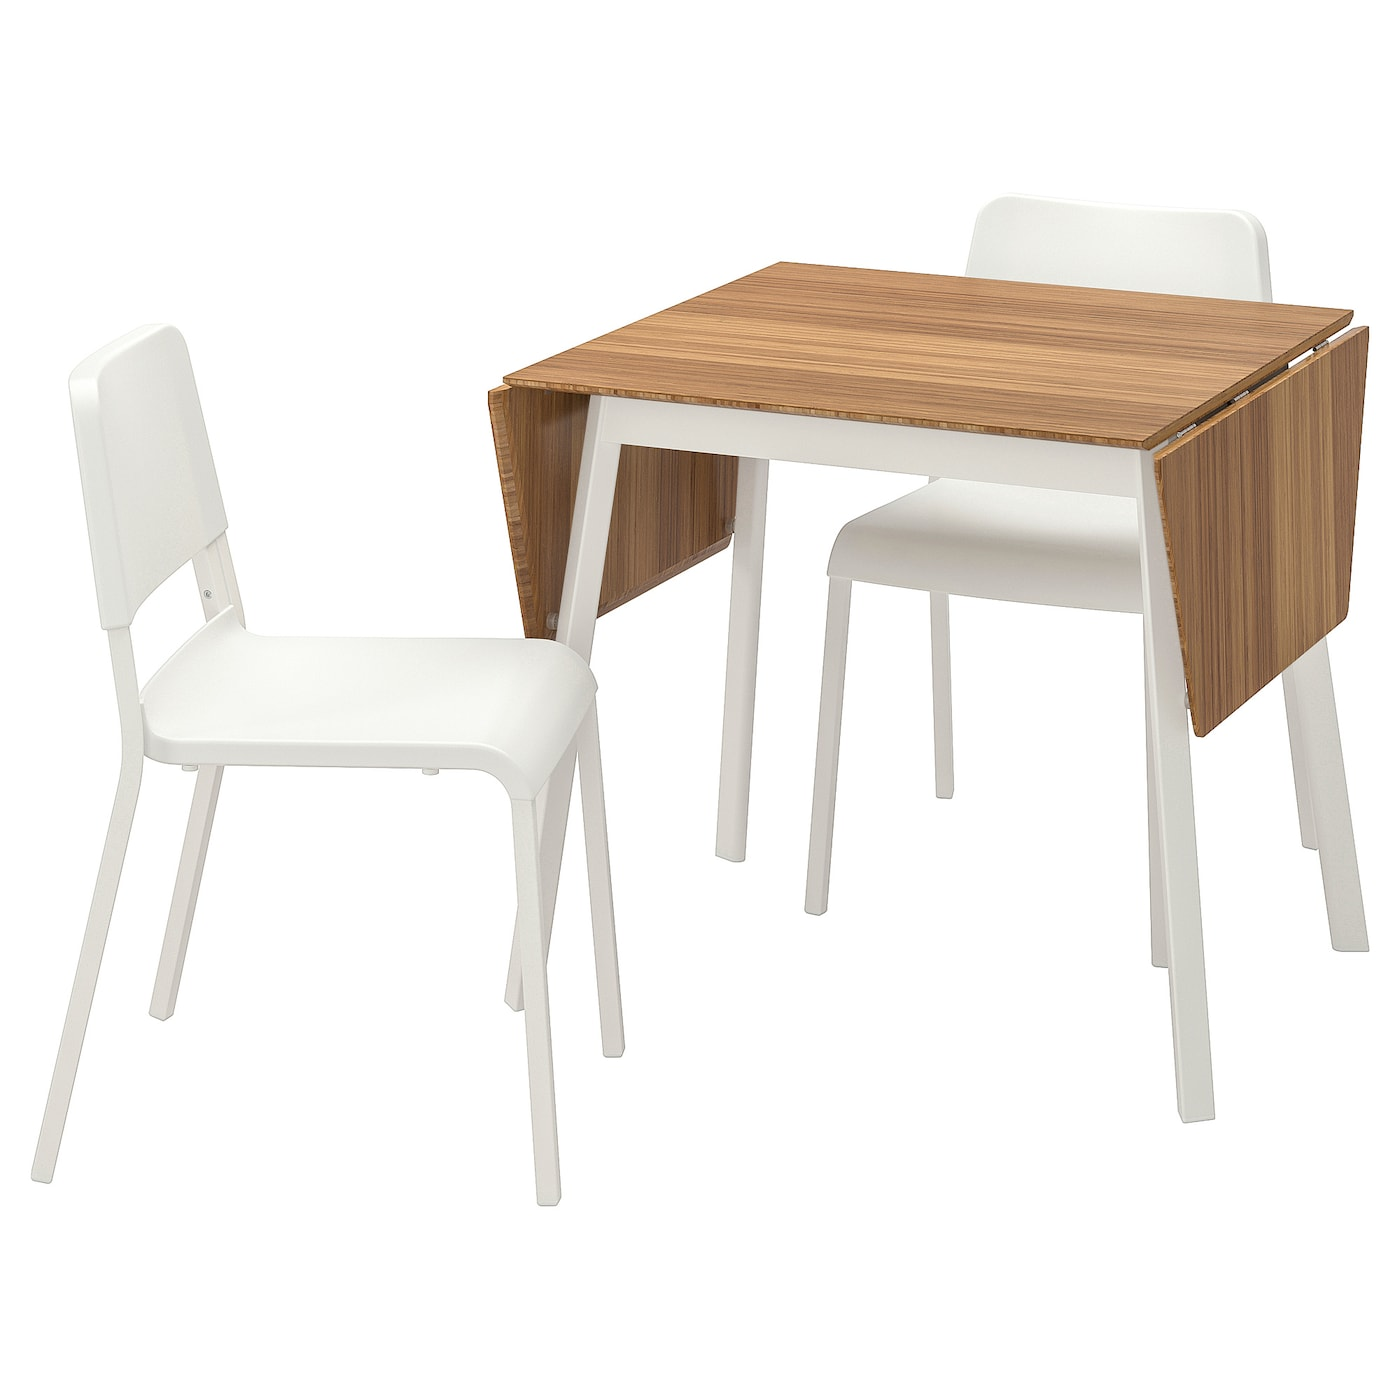 Ikea Ps 2012 Teodores Table And 2 Chairs Bamboo White